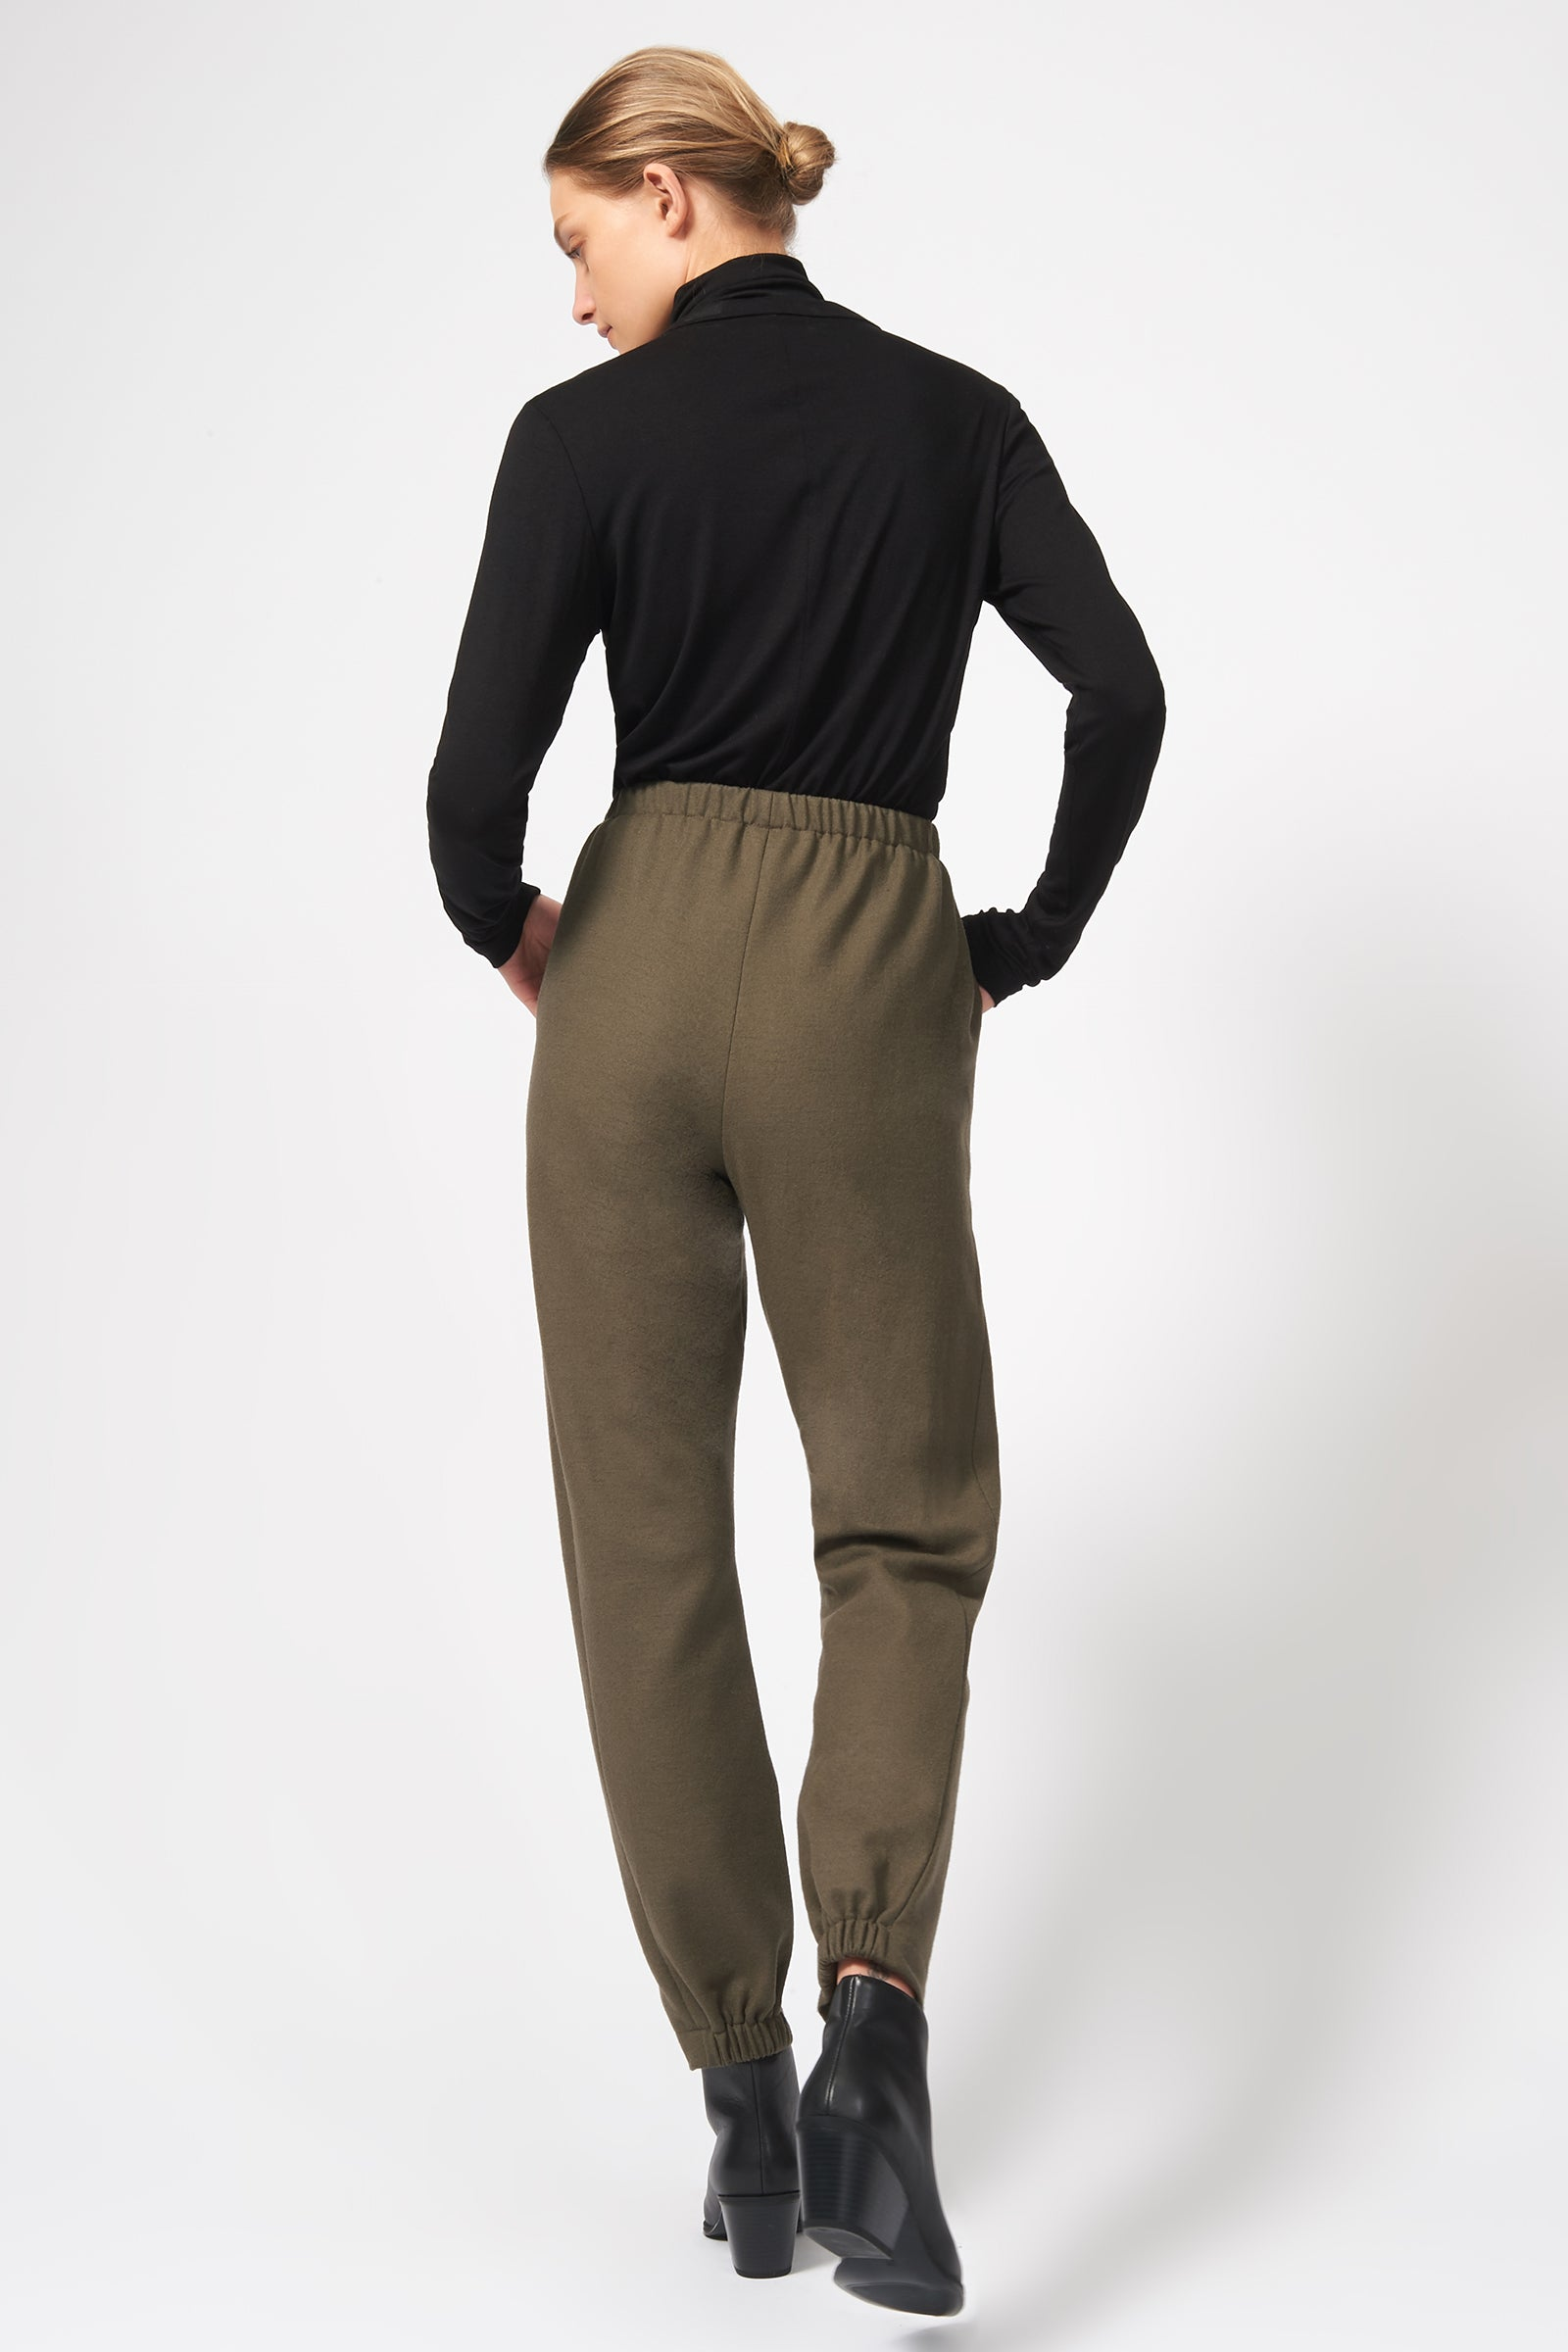 Kal Rieman Felted Jersey Angle Seam Jogger in Moss on Model Full Back View